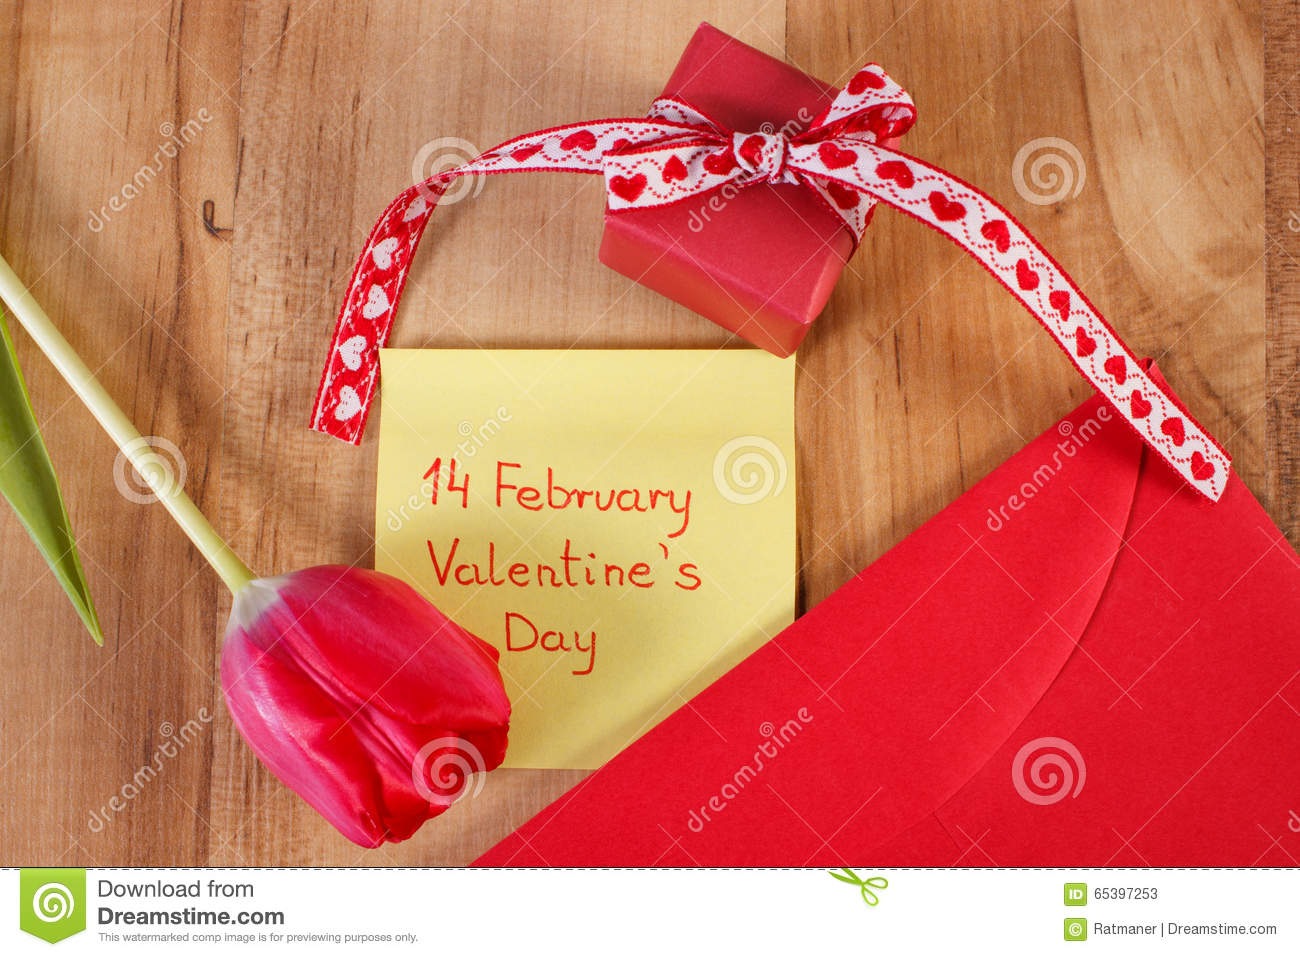 Perfect Valentine Wall Decorations Ideas - Art & Wall Decor ...